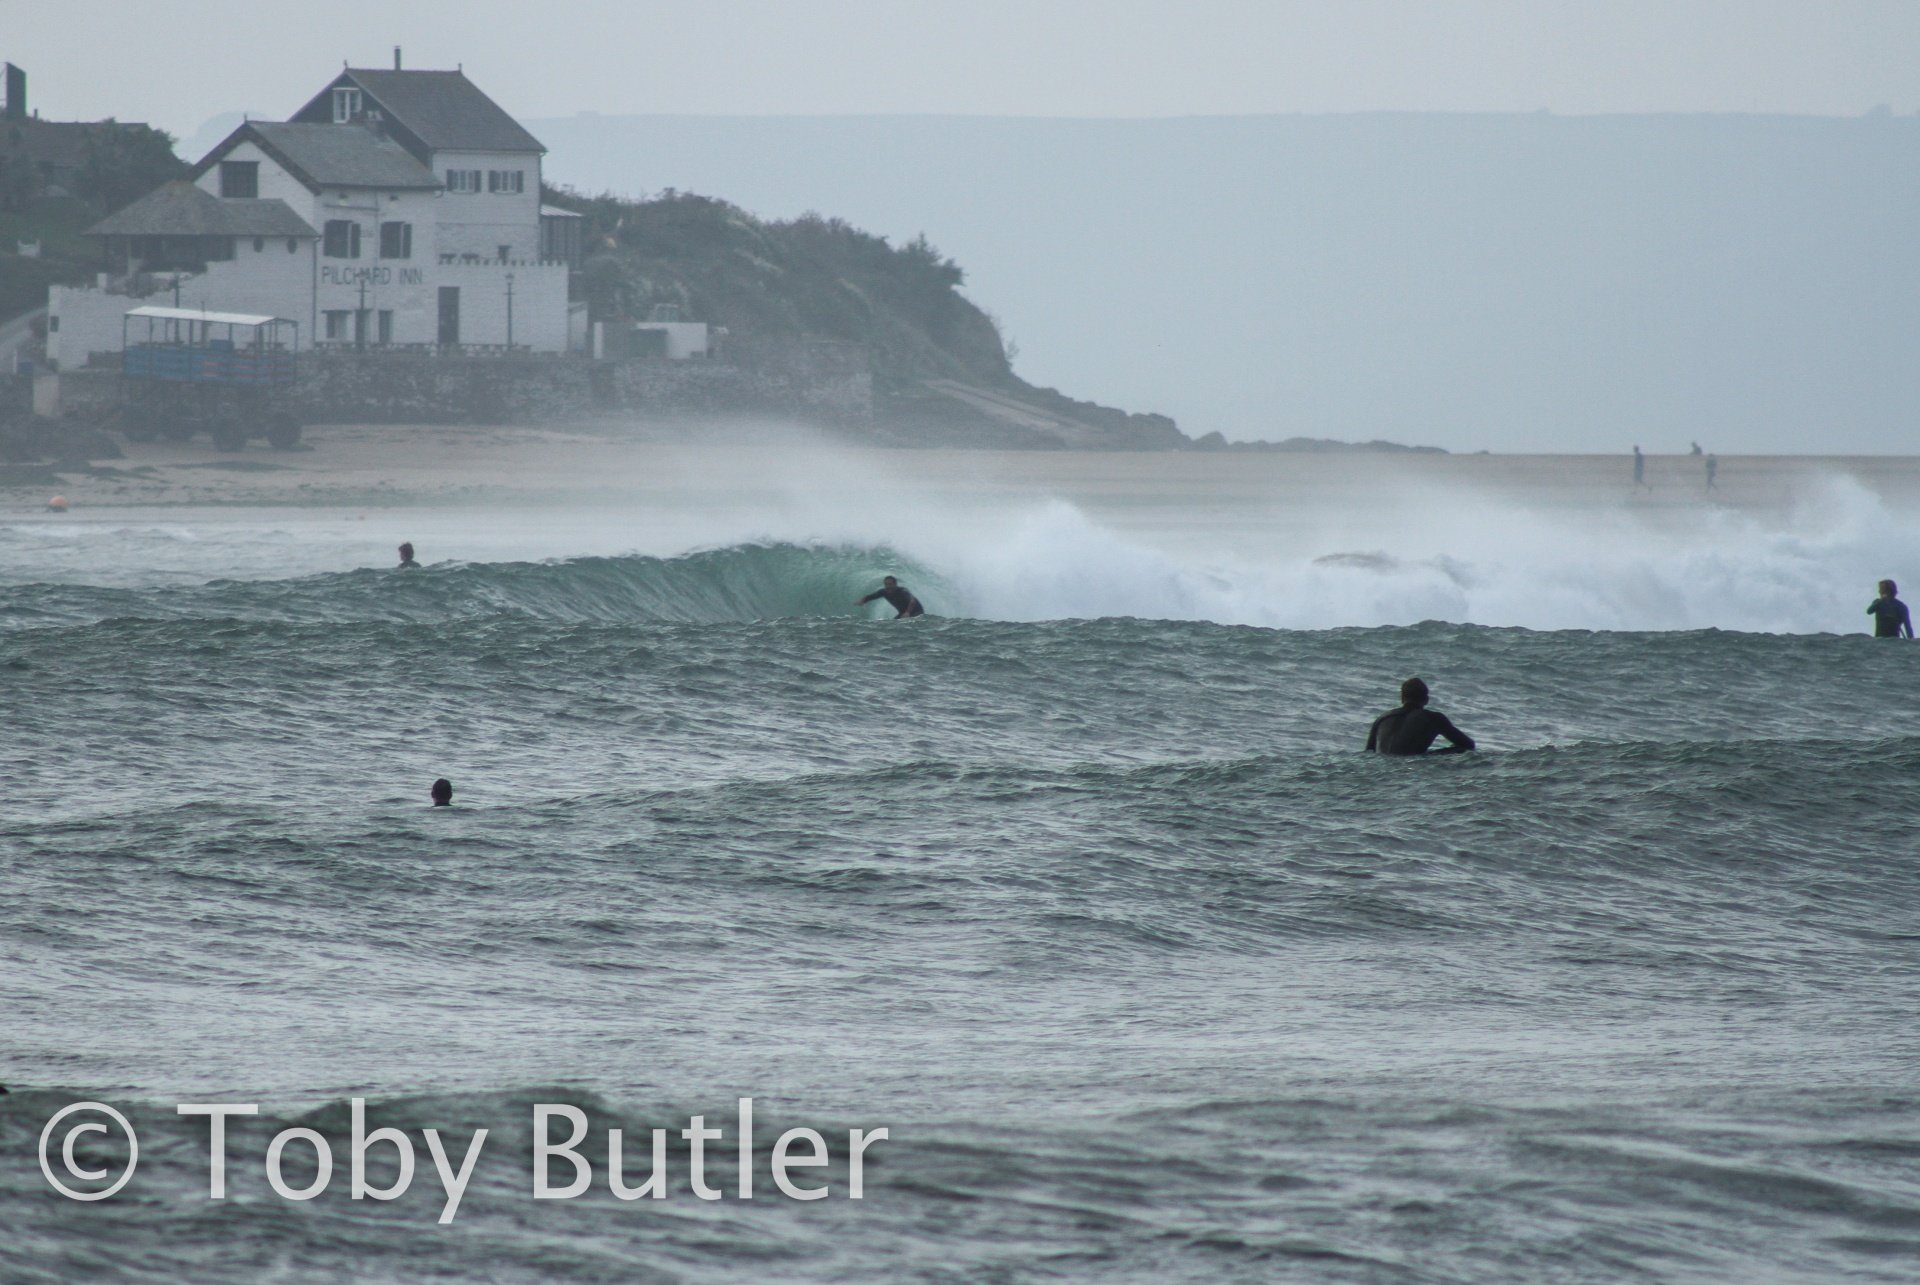 TobyButler.'s photo of Bantham